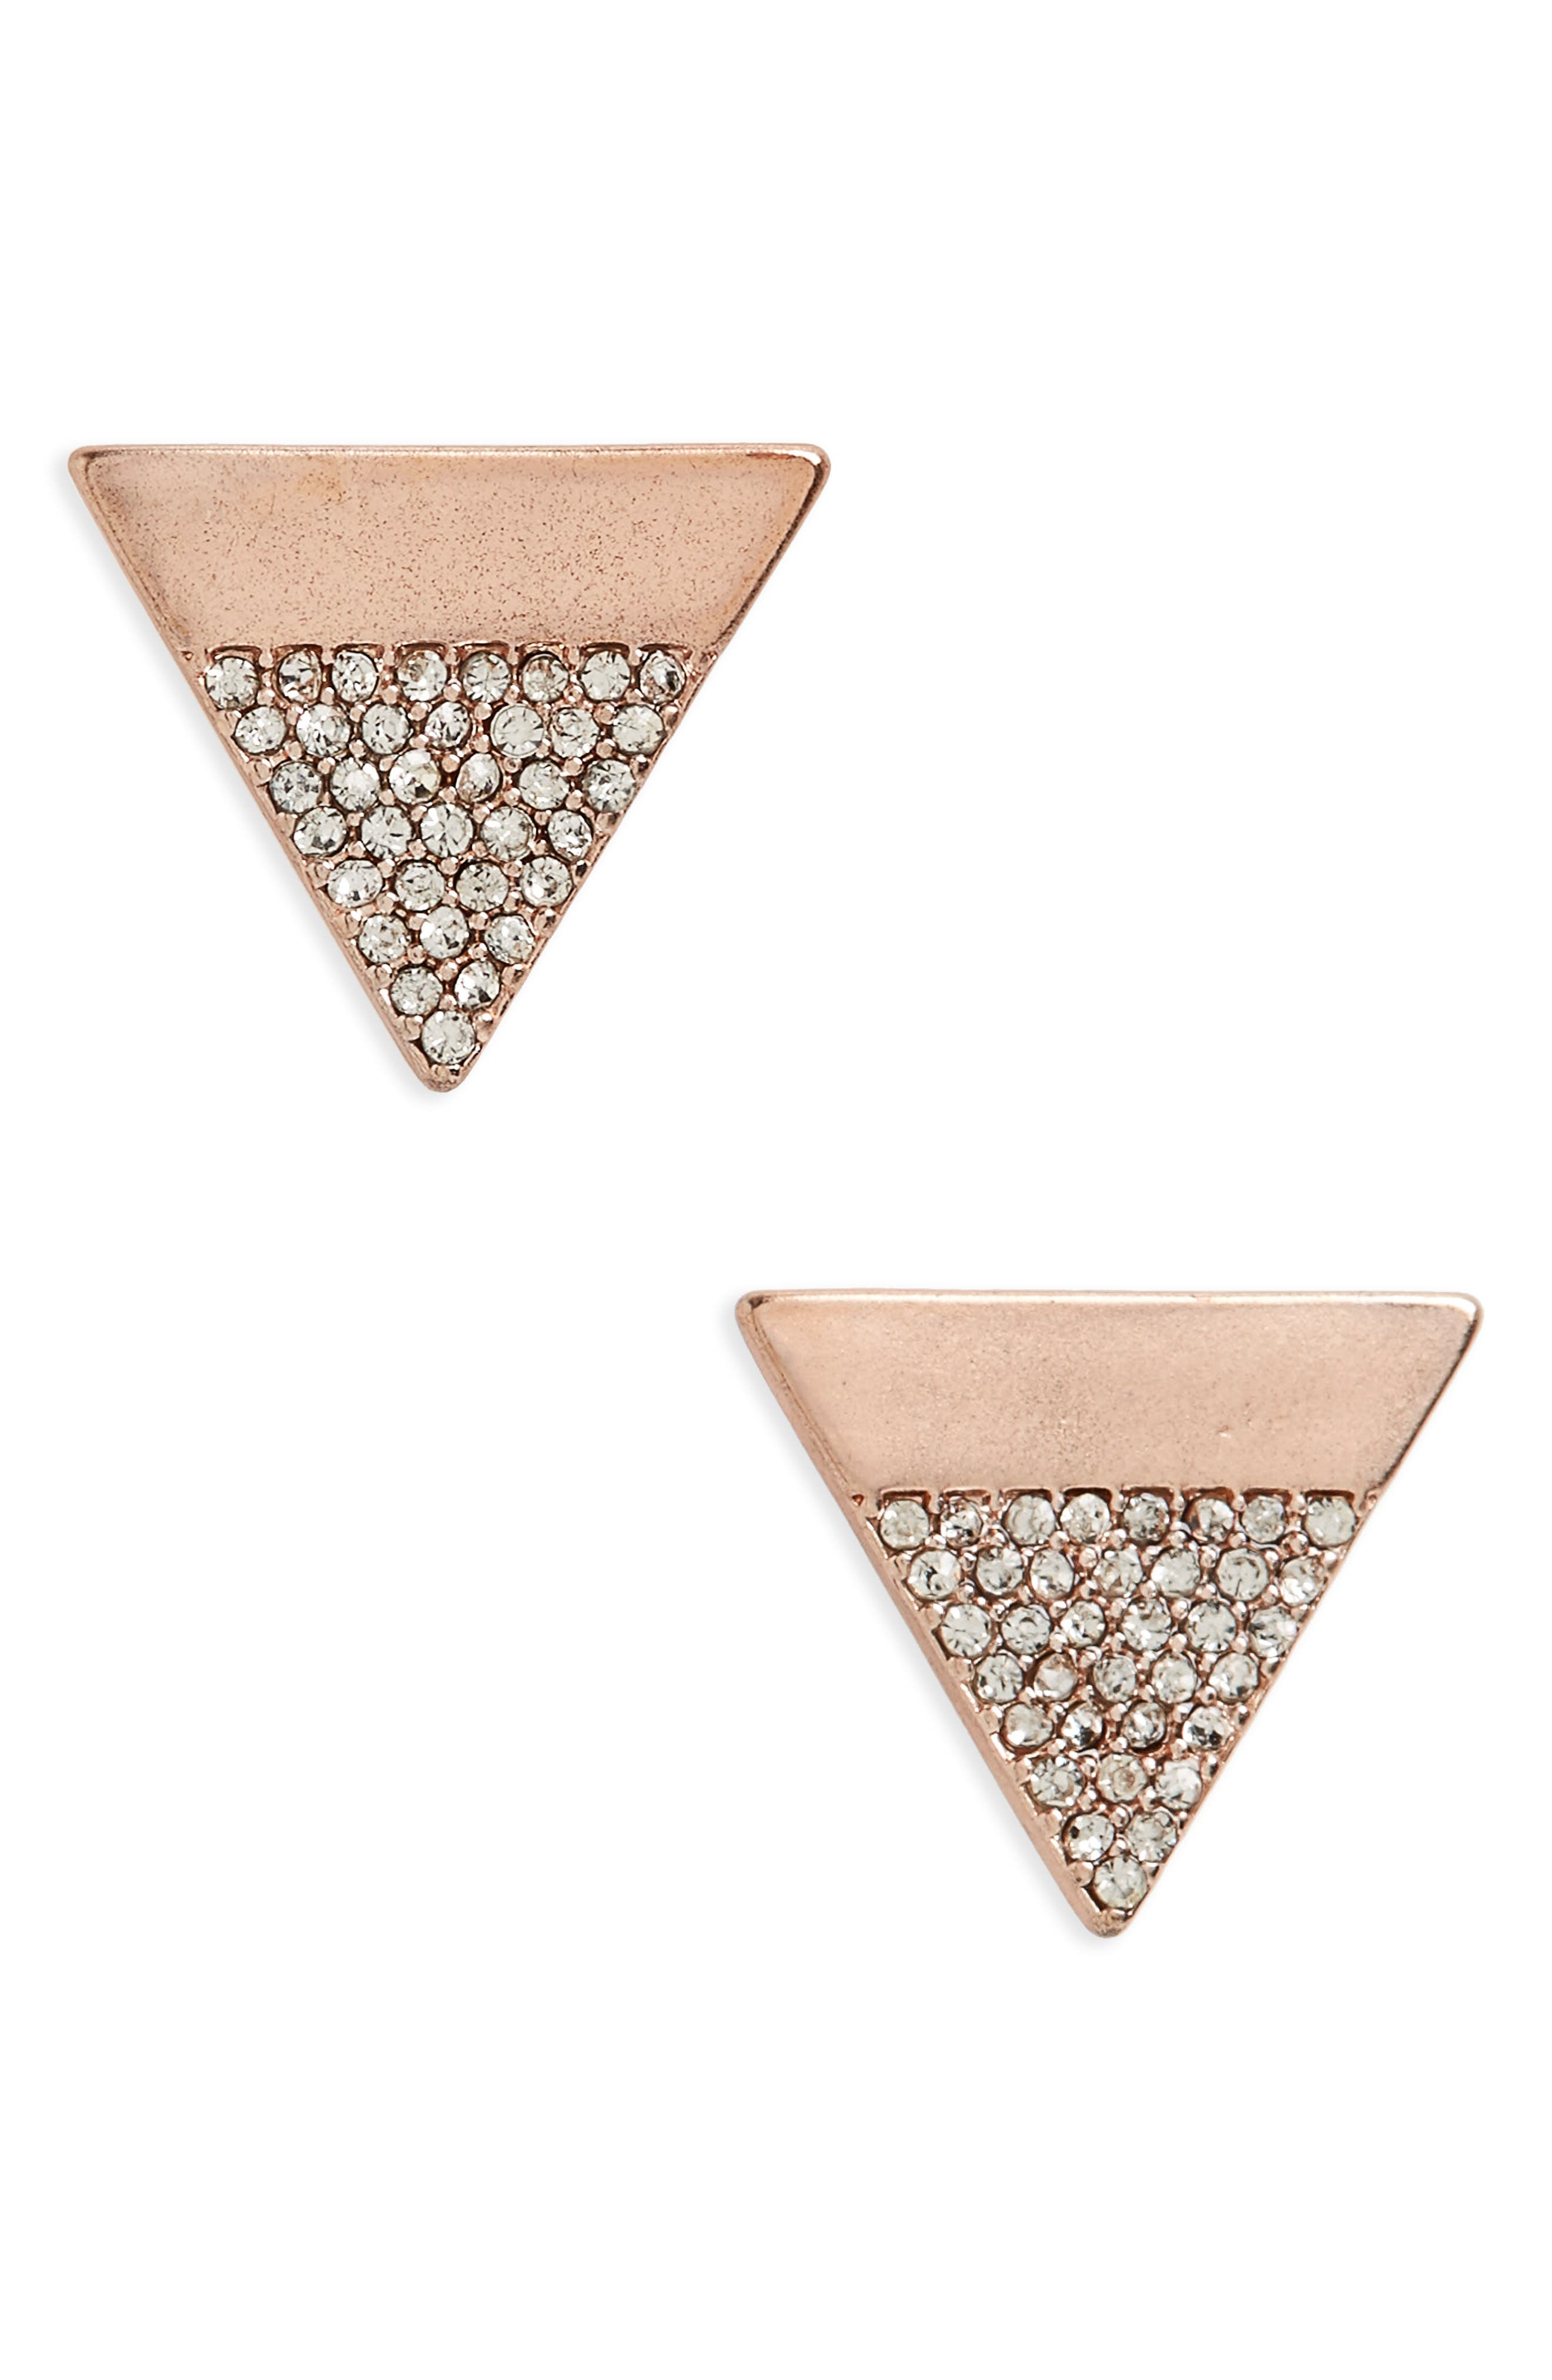 CANVAS JEWELRY Canvas Pavé Triangle Stud Earrings